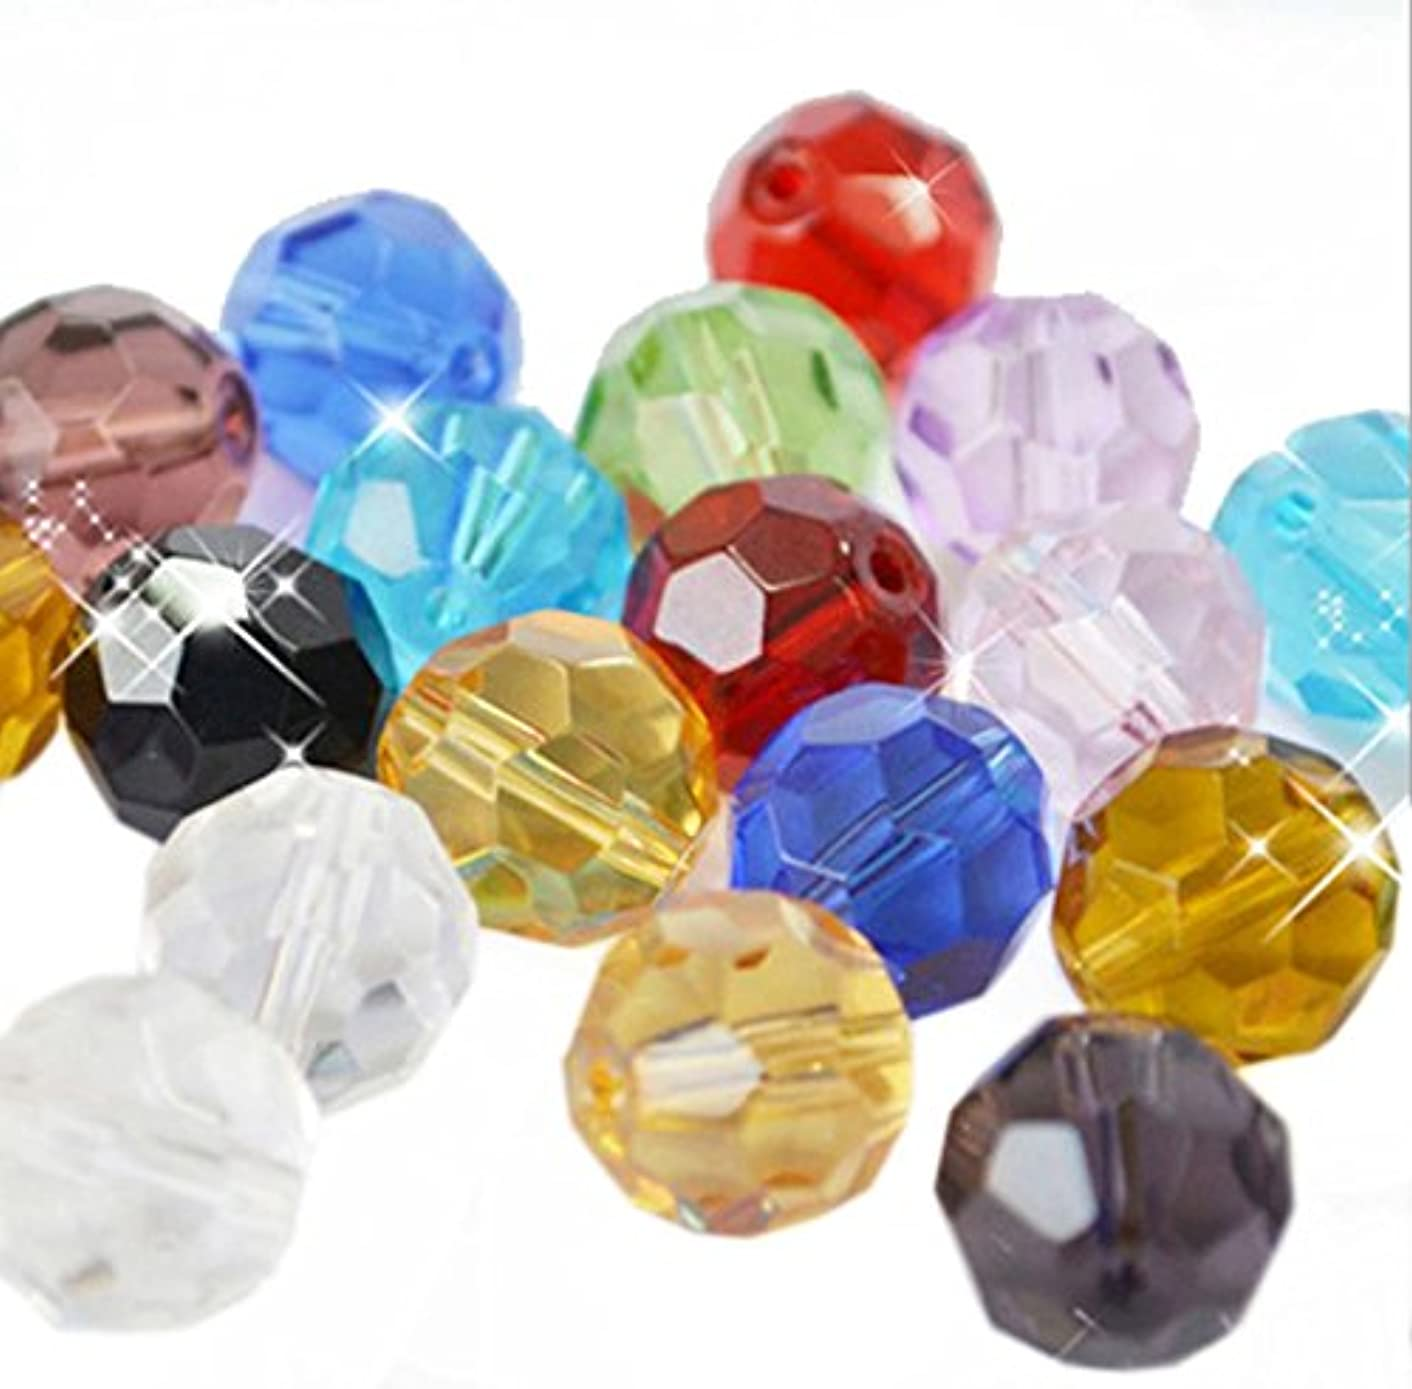 BIHRTC Pack of 300 Rondelle Faceted Crystal Glass Spacer Loose Beads for Jewelry Making Findings (8mm, Assorted color)